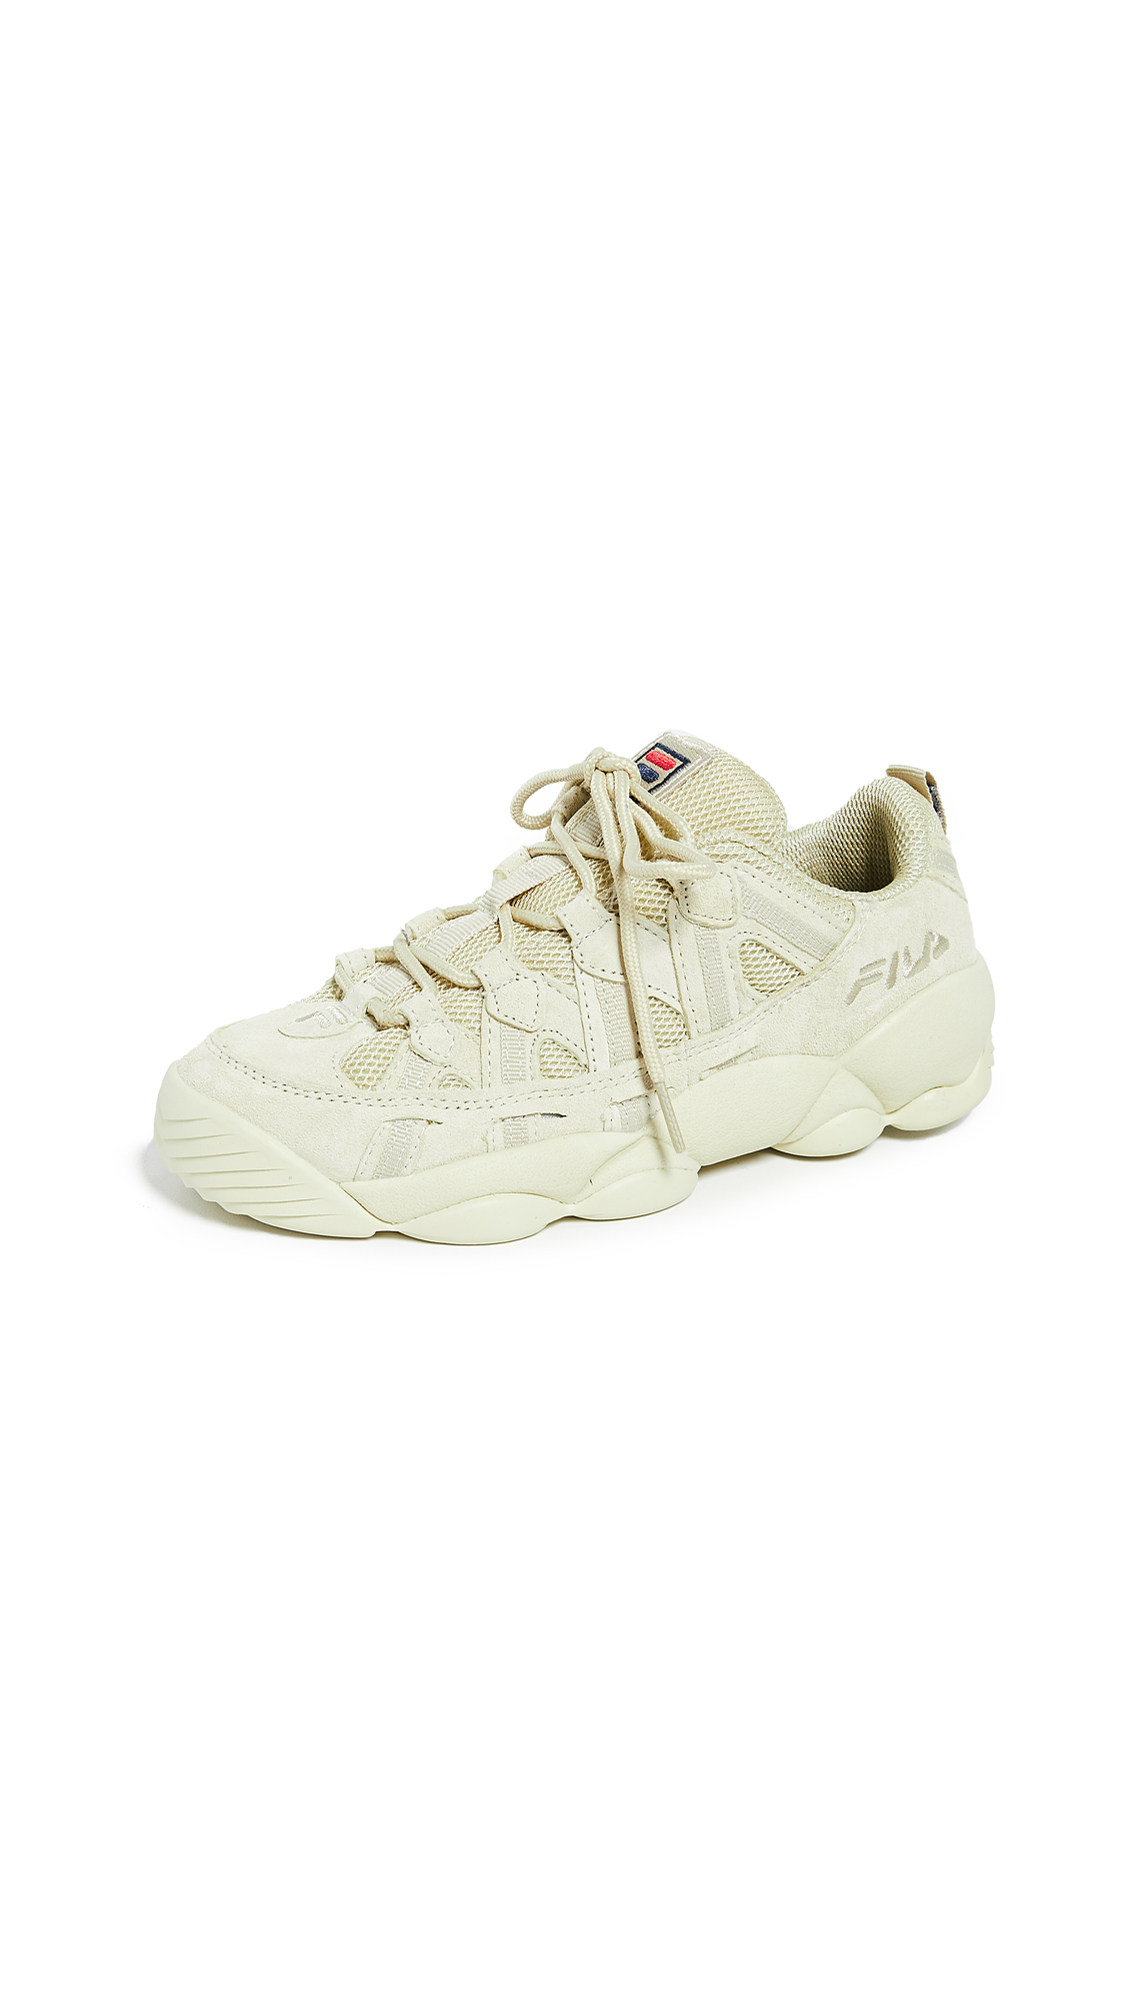 Fila Spaghetti Low Sneakers